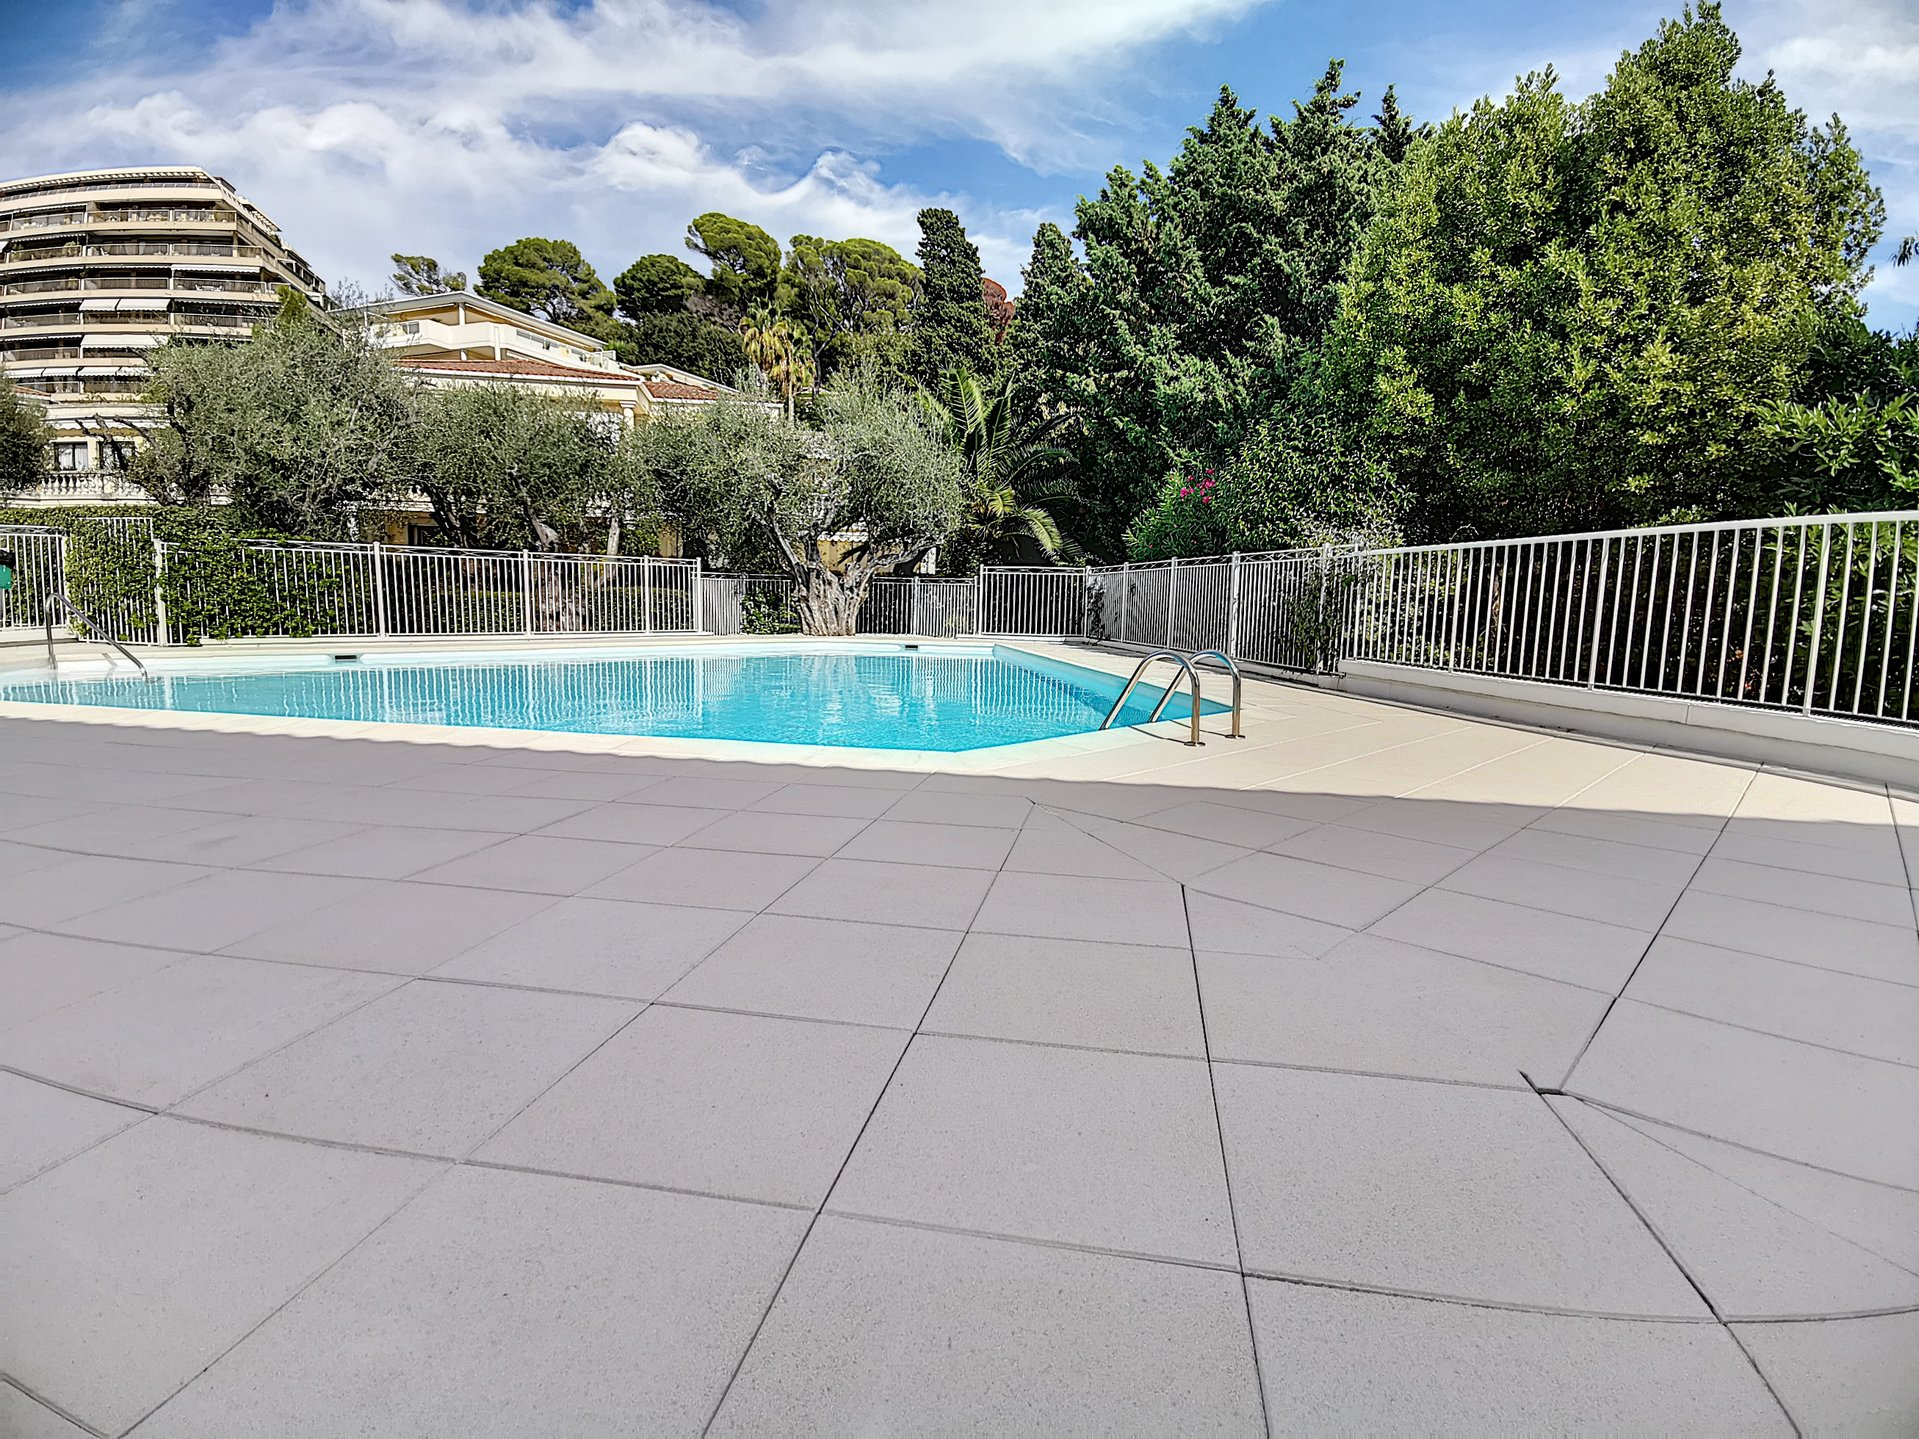 Cannes Oxford, Nice 1 bedroom appartmen duplex in satnding residence with swimming pool